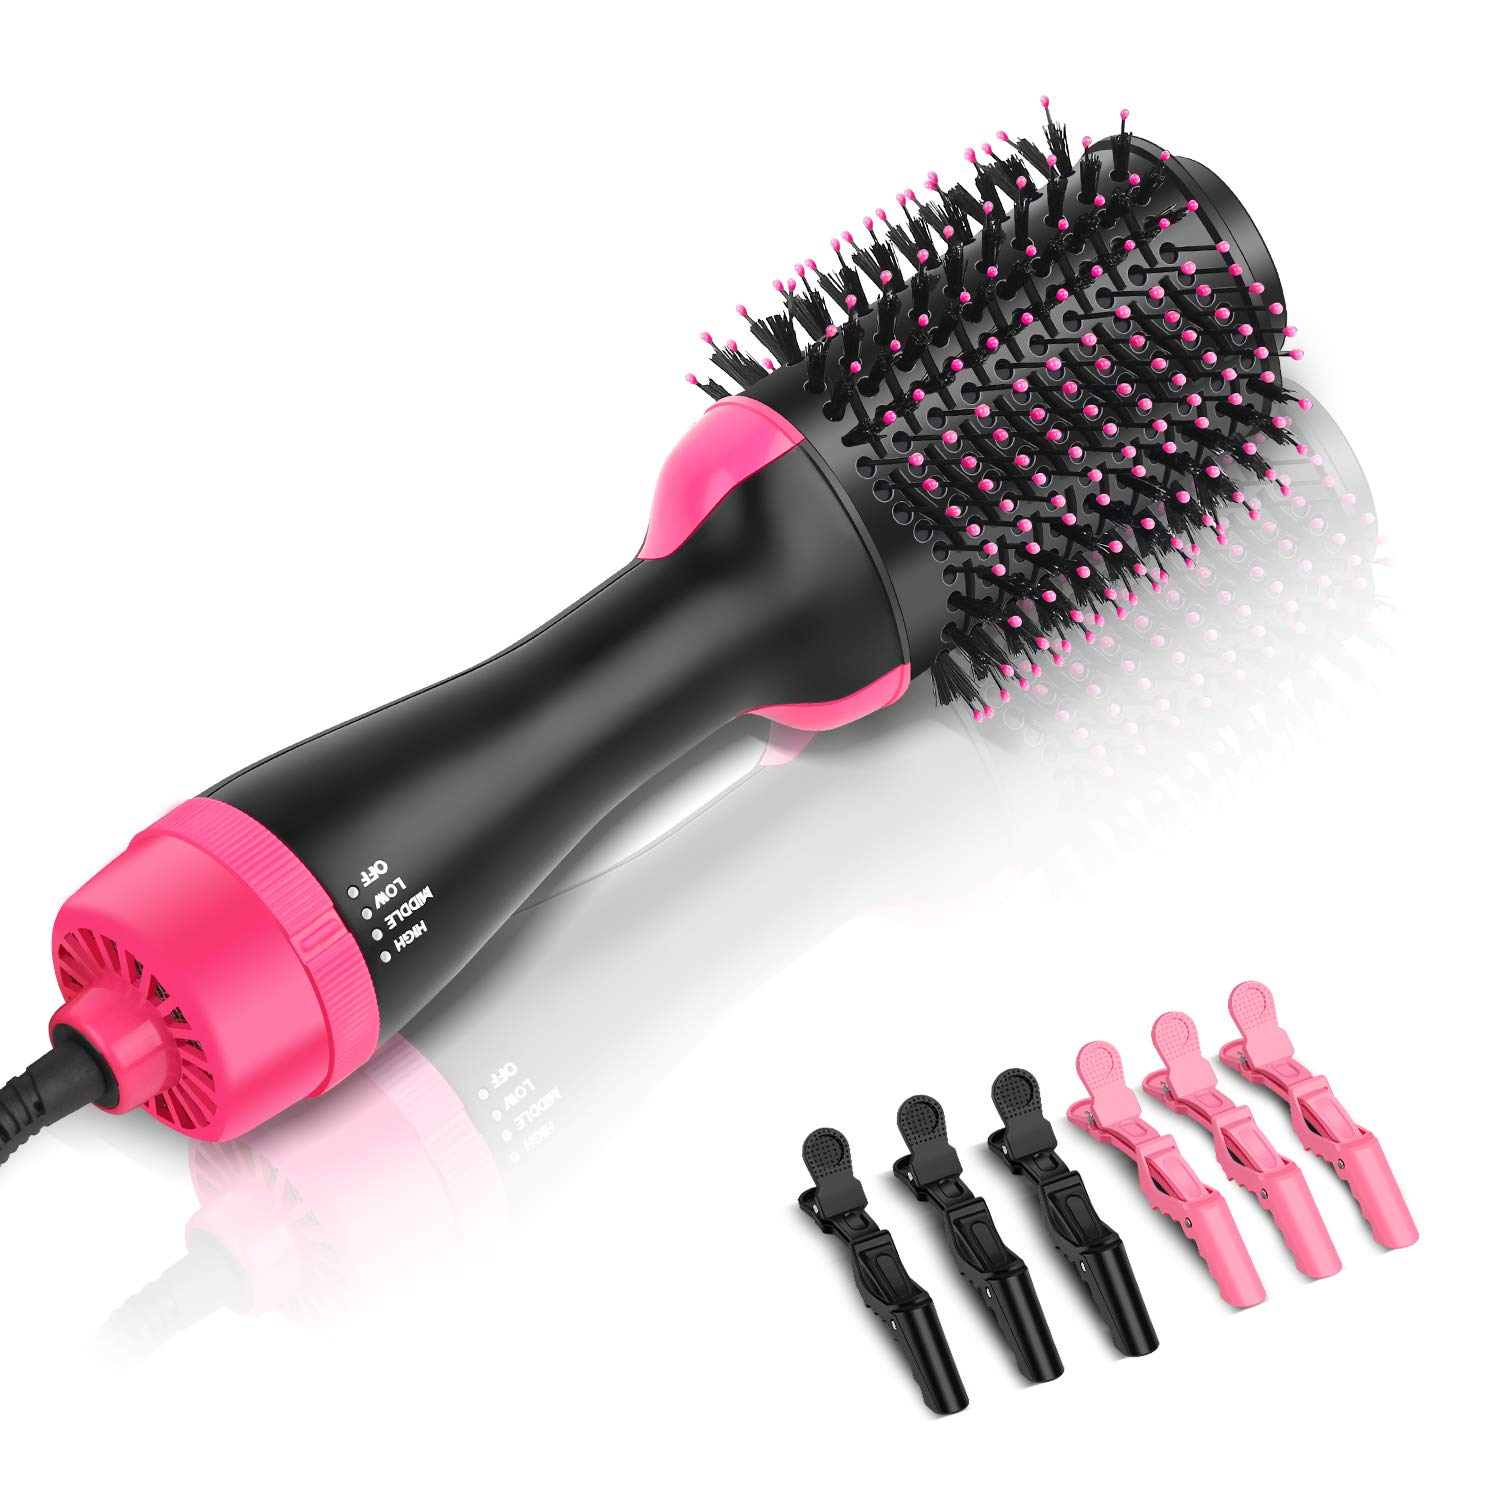 Growom One Step Hot Air Brush, Hair Dryer, Straightener, Curler, Hair Styler, Designer and Volumizer, with 3 Pcs Black and 3 Pcs Pink Plastic Alligator Hairgrips for All Hairstyles